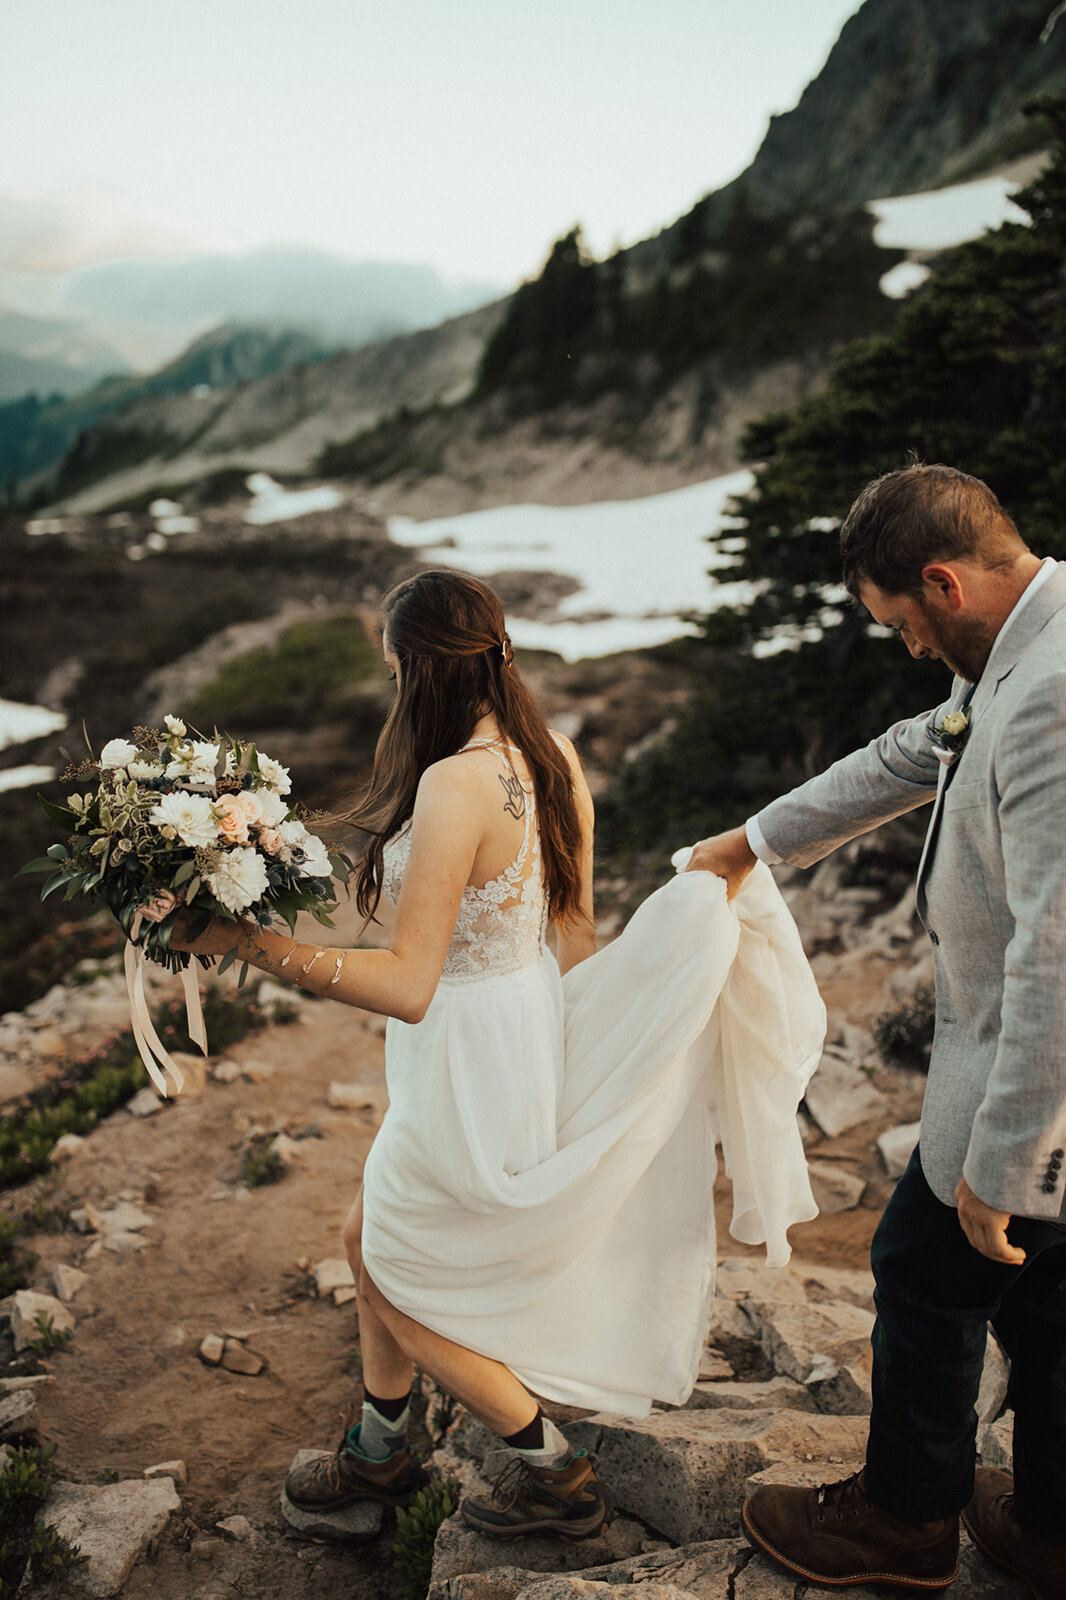 - We've looked at them (elopement photos) five times and can't stop! There are literally no words...- Melissa Hurley